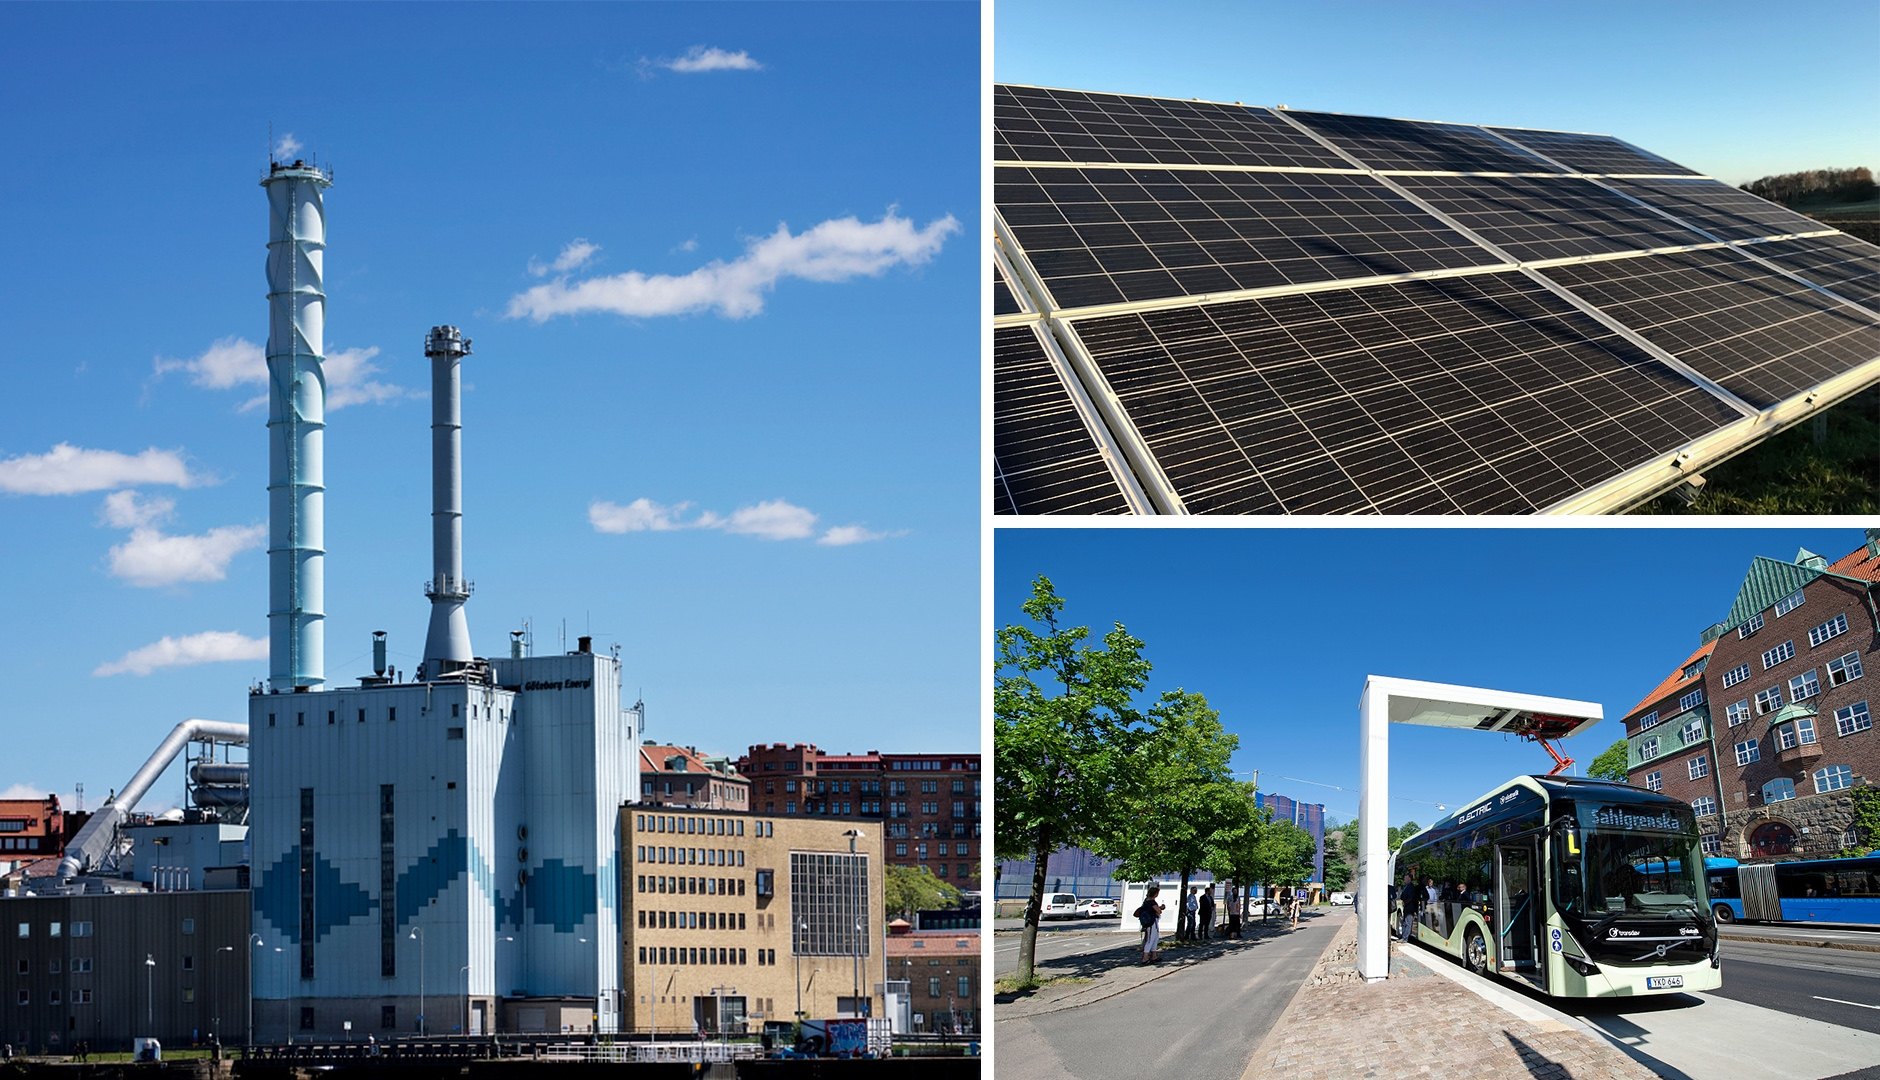 Gothenburg's energy company to be fossil free by 2025